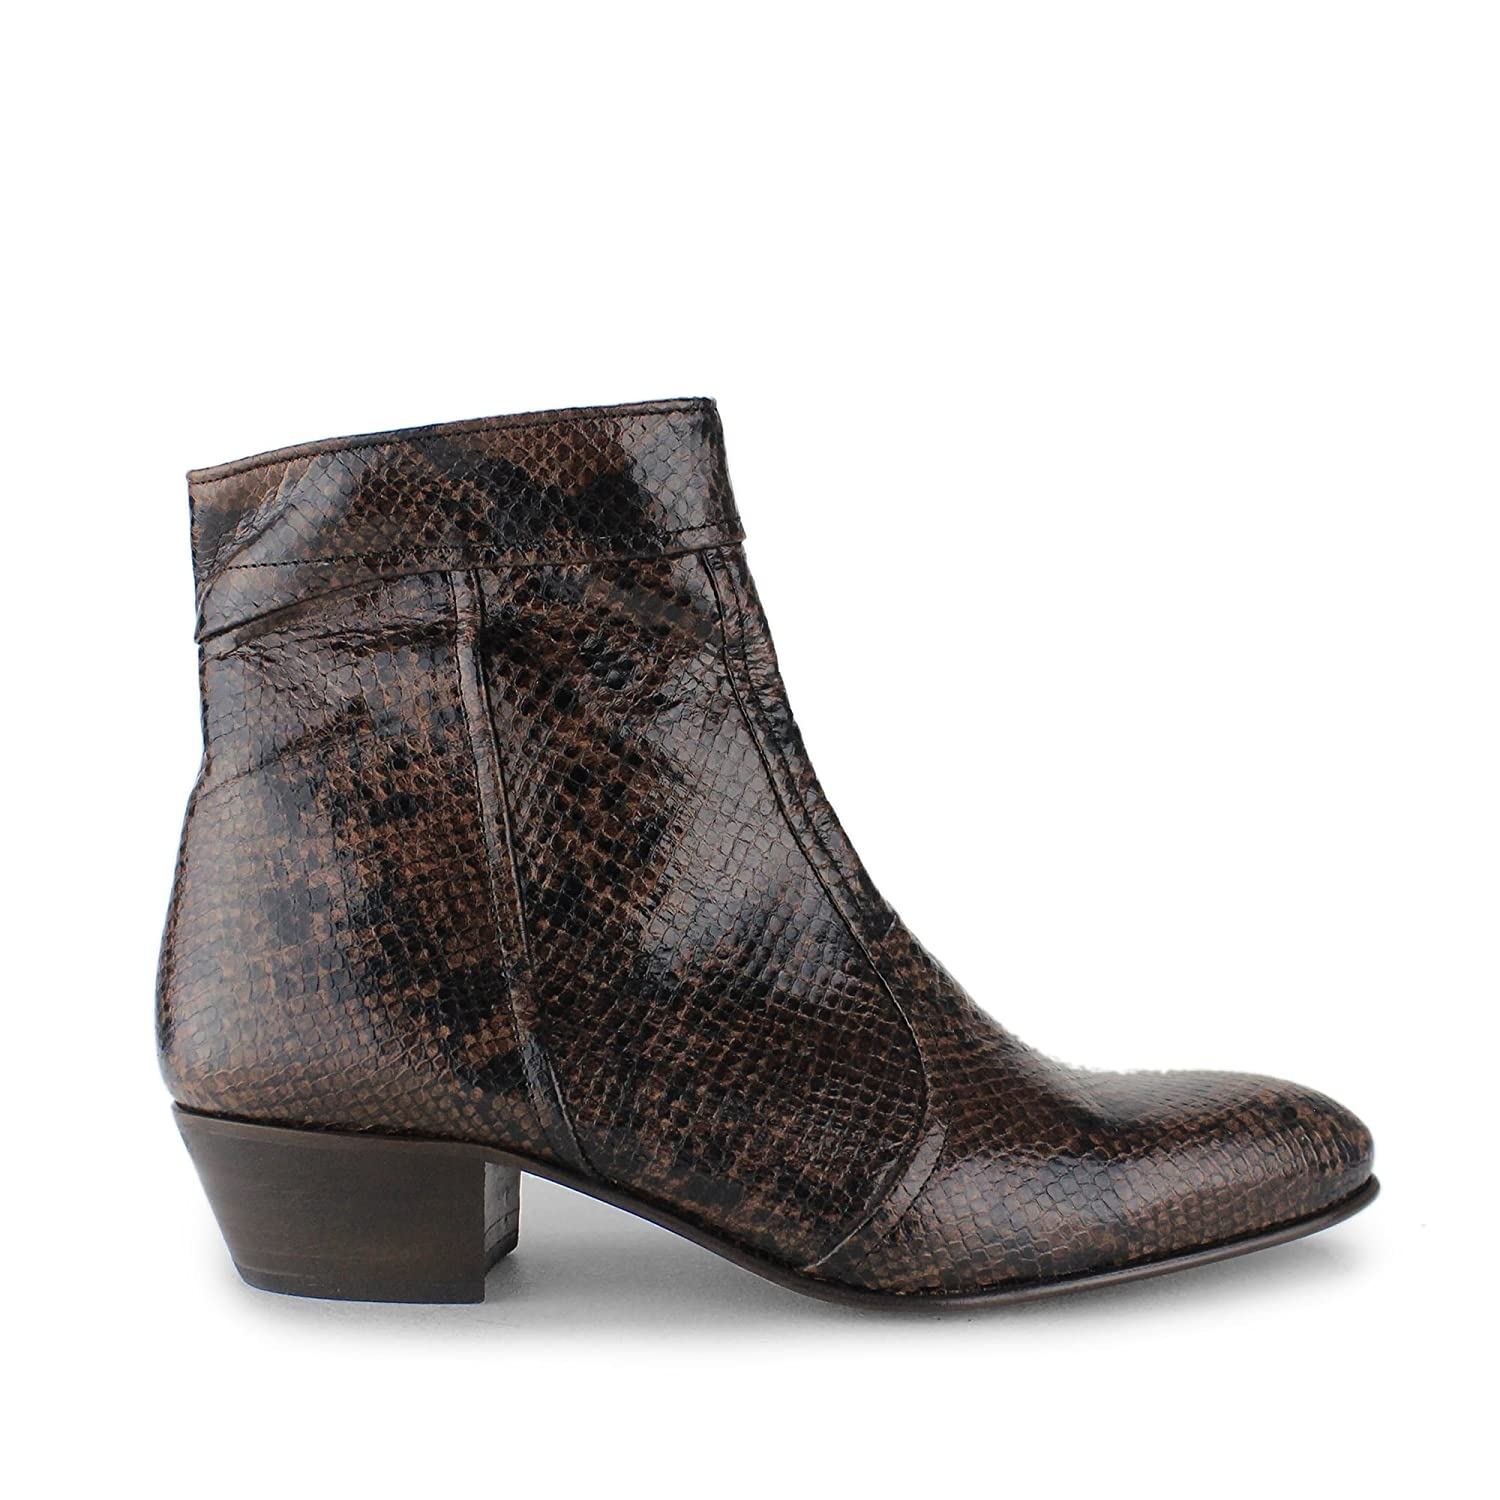 4b548f366573 Club Cubano Emmanuel Mens Snakeskin Leather Cuban Heel Boots: Amazon.co.uk:  Shoes & Bags